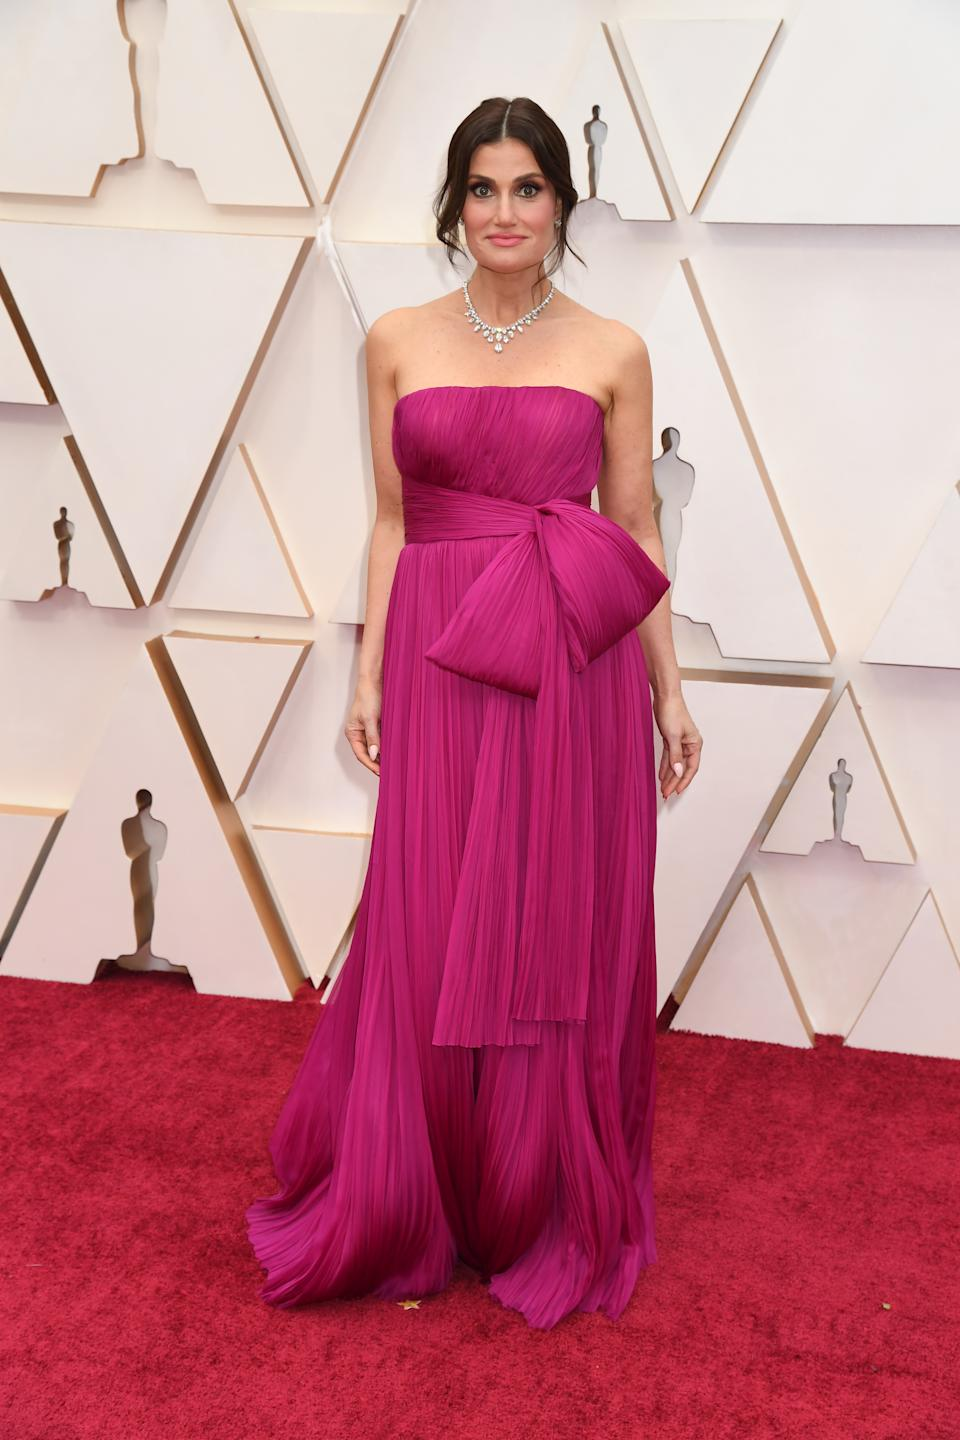 """The """"Frozen II"""" star arrived on the red carpet in a fuchsia gown by J. Mendel and Harry Winston diamonds before taking the stage to perform the film's Oscar nominated song """"Into the Unknown."""""""